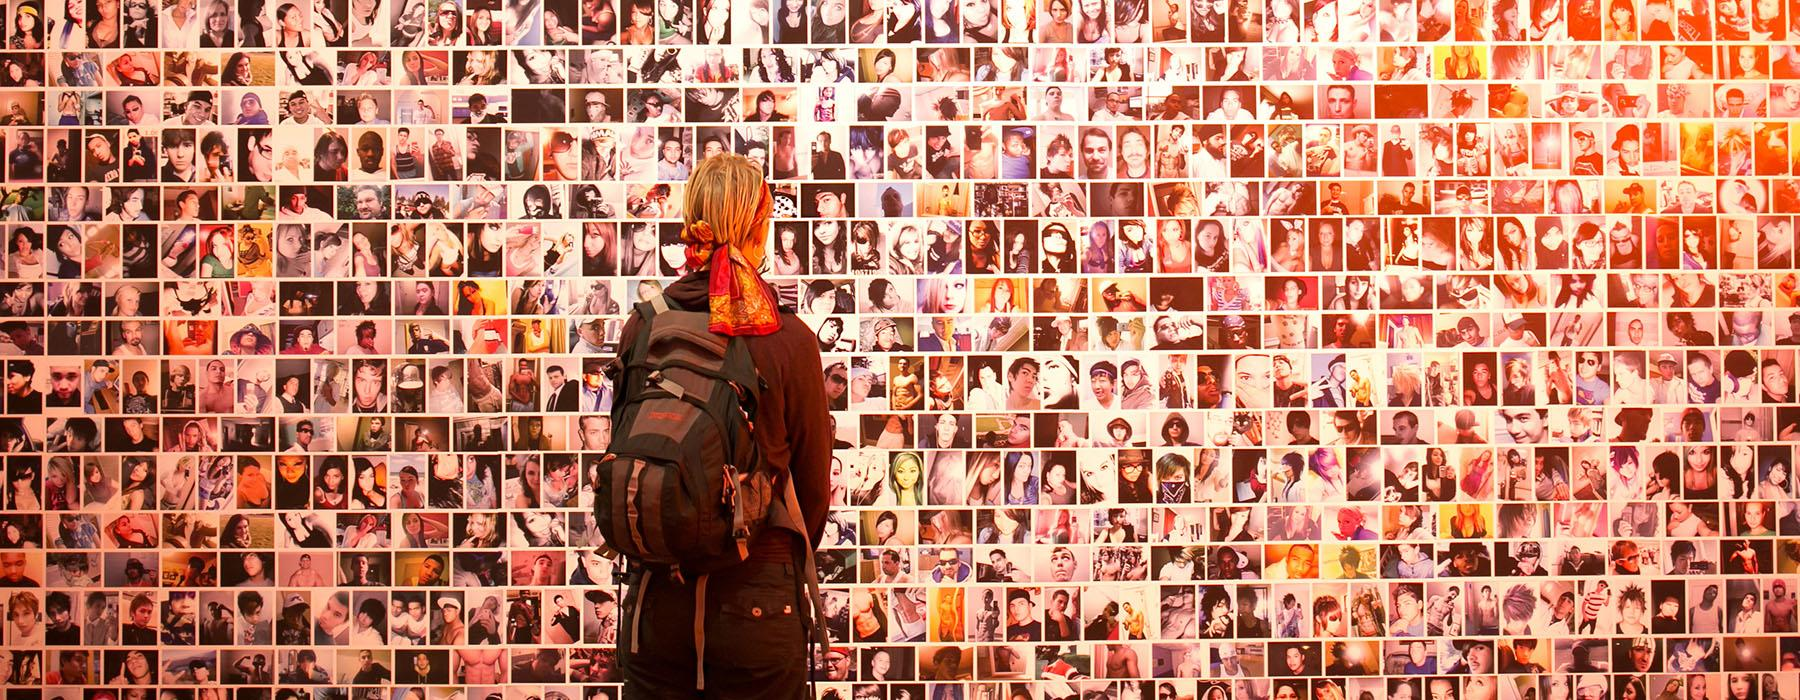 A woman stands in front of a wall of selfie photos